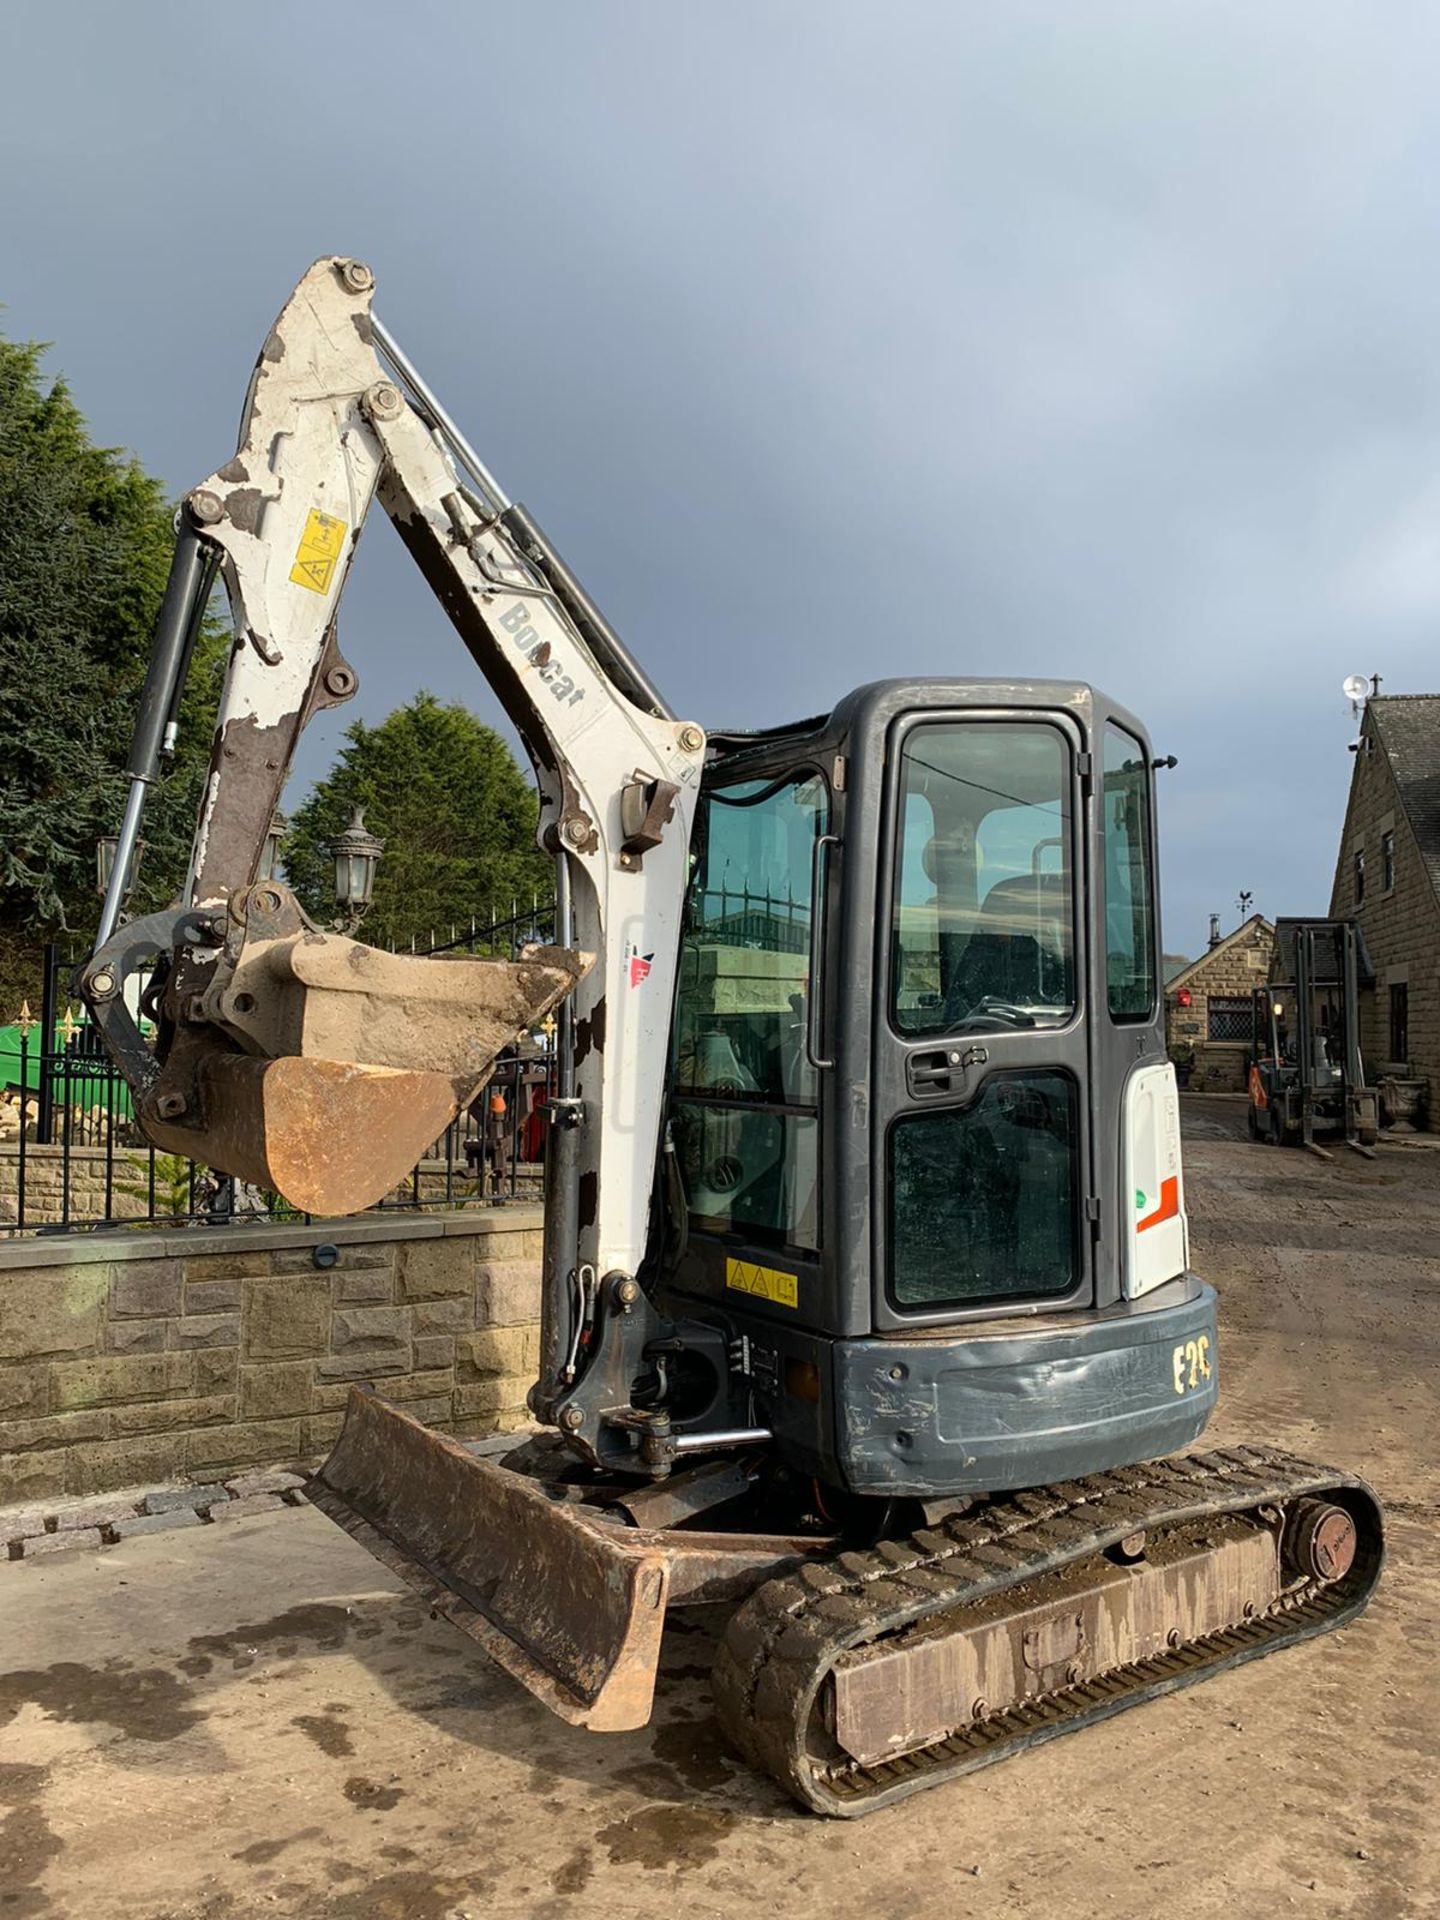 2012 BOBCAT E26 RUBBER TRACKED CRAWLER EXCAVATOR / MINI DIGGER, RUNS, DRIVES AND DIGS, 3 X BUCKETS - Image 3 of 5